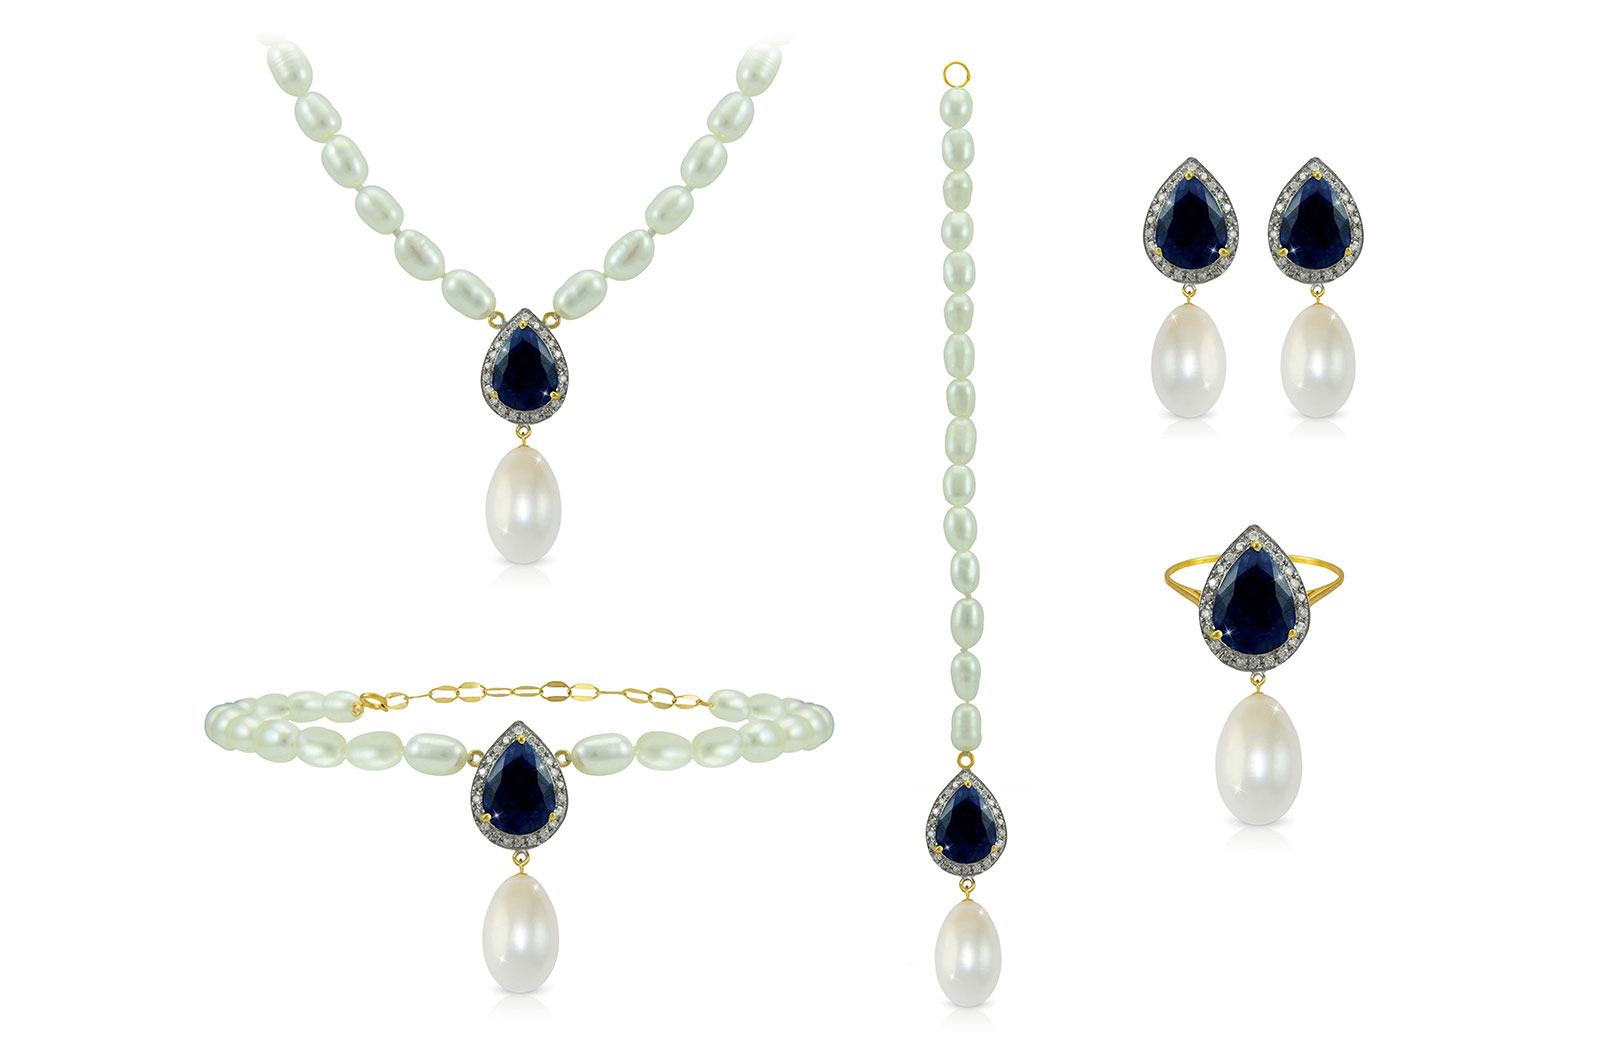 Vera Perla 18K Gold 0.72ct Diamonds, Royal Indian Sapphire and 13mm Pearl  5 pcs set